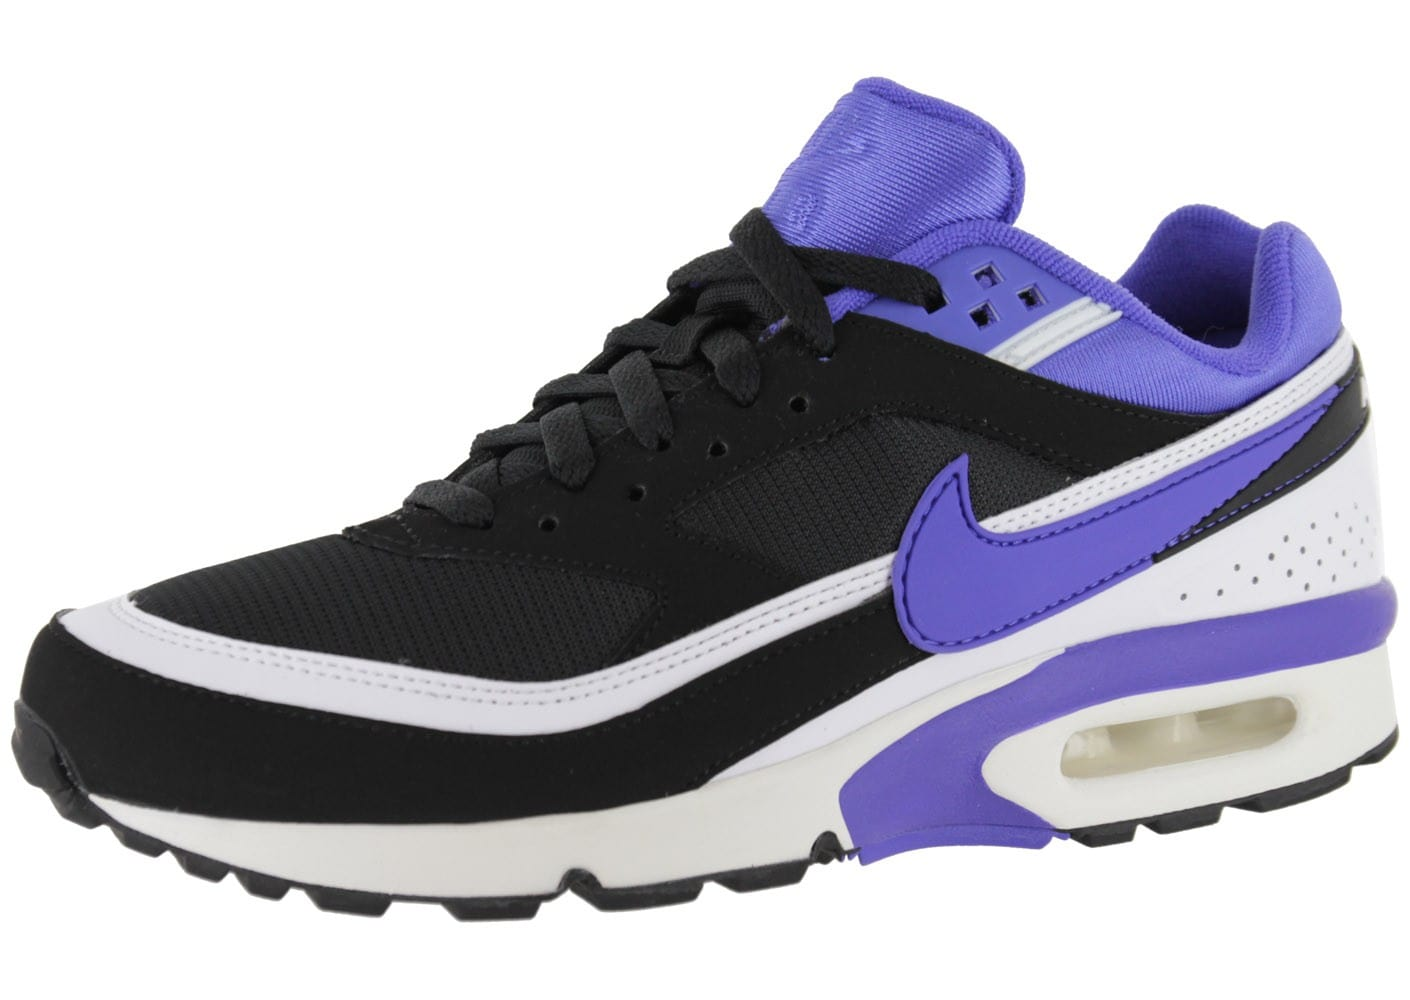 nike air max bw classic persian violet chaussures homme chausport. Black Bedroom Furniture Sets. Home Design Ideas